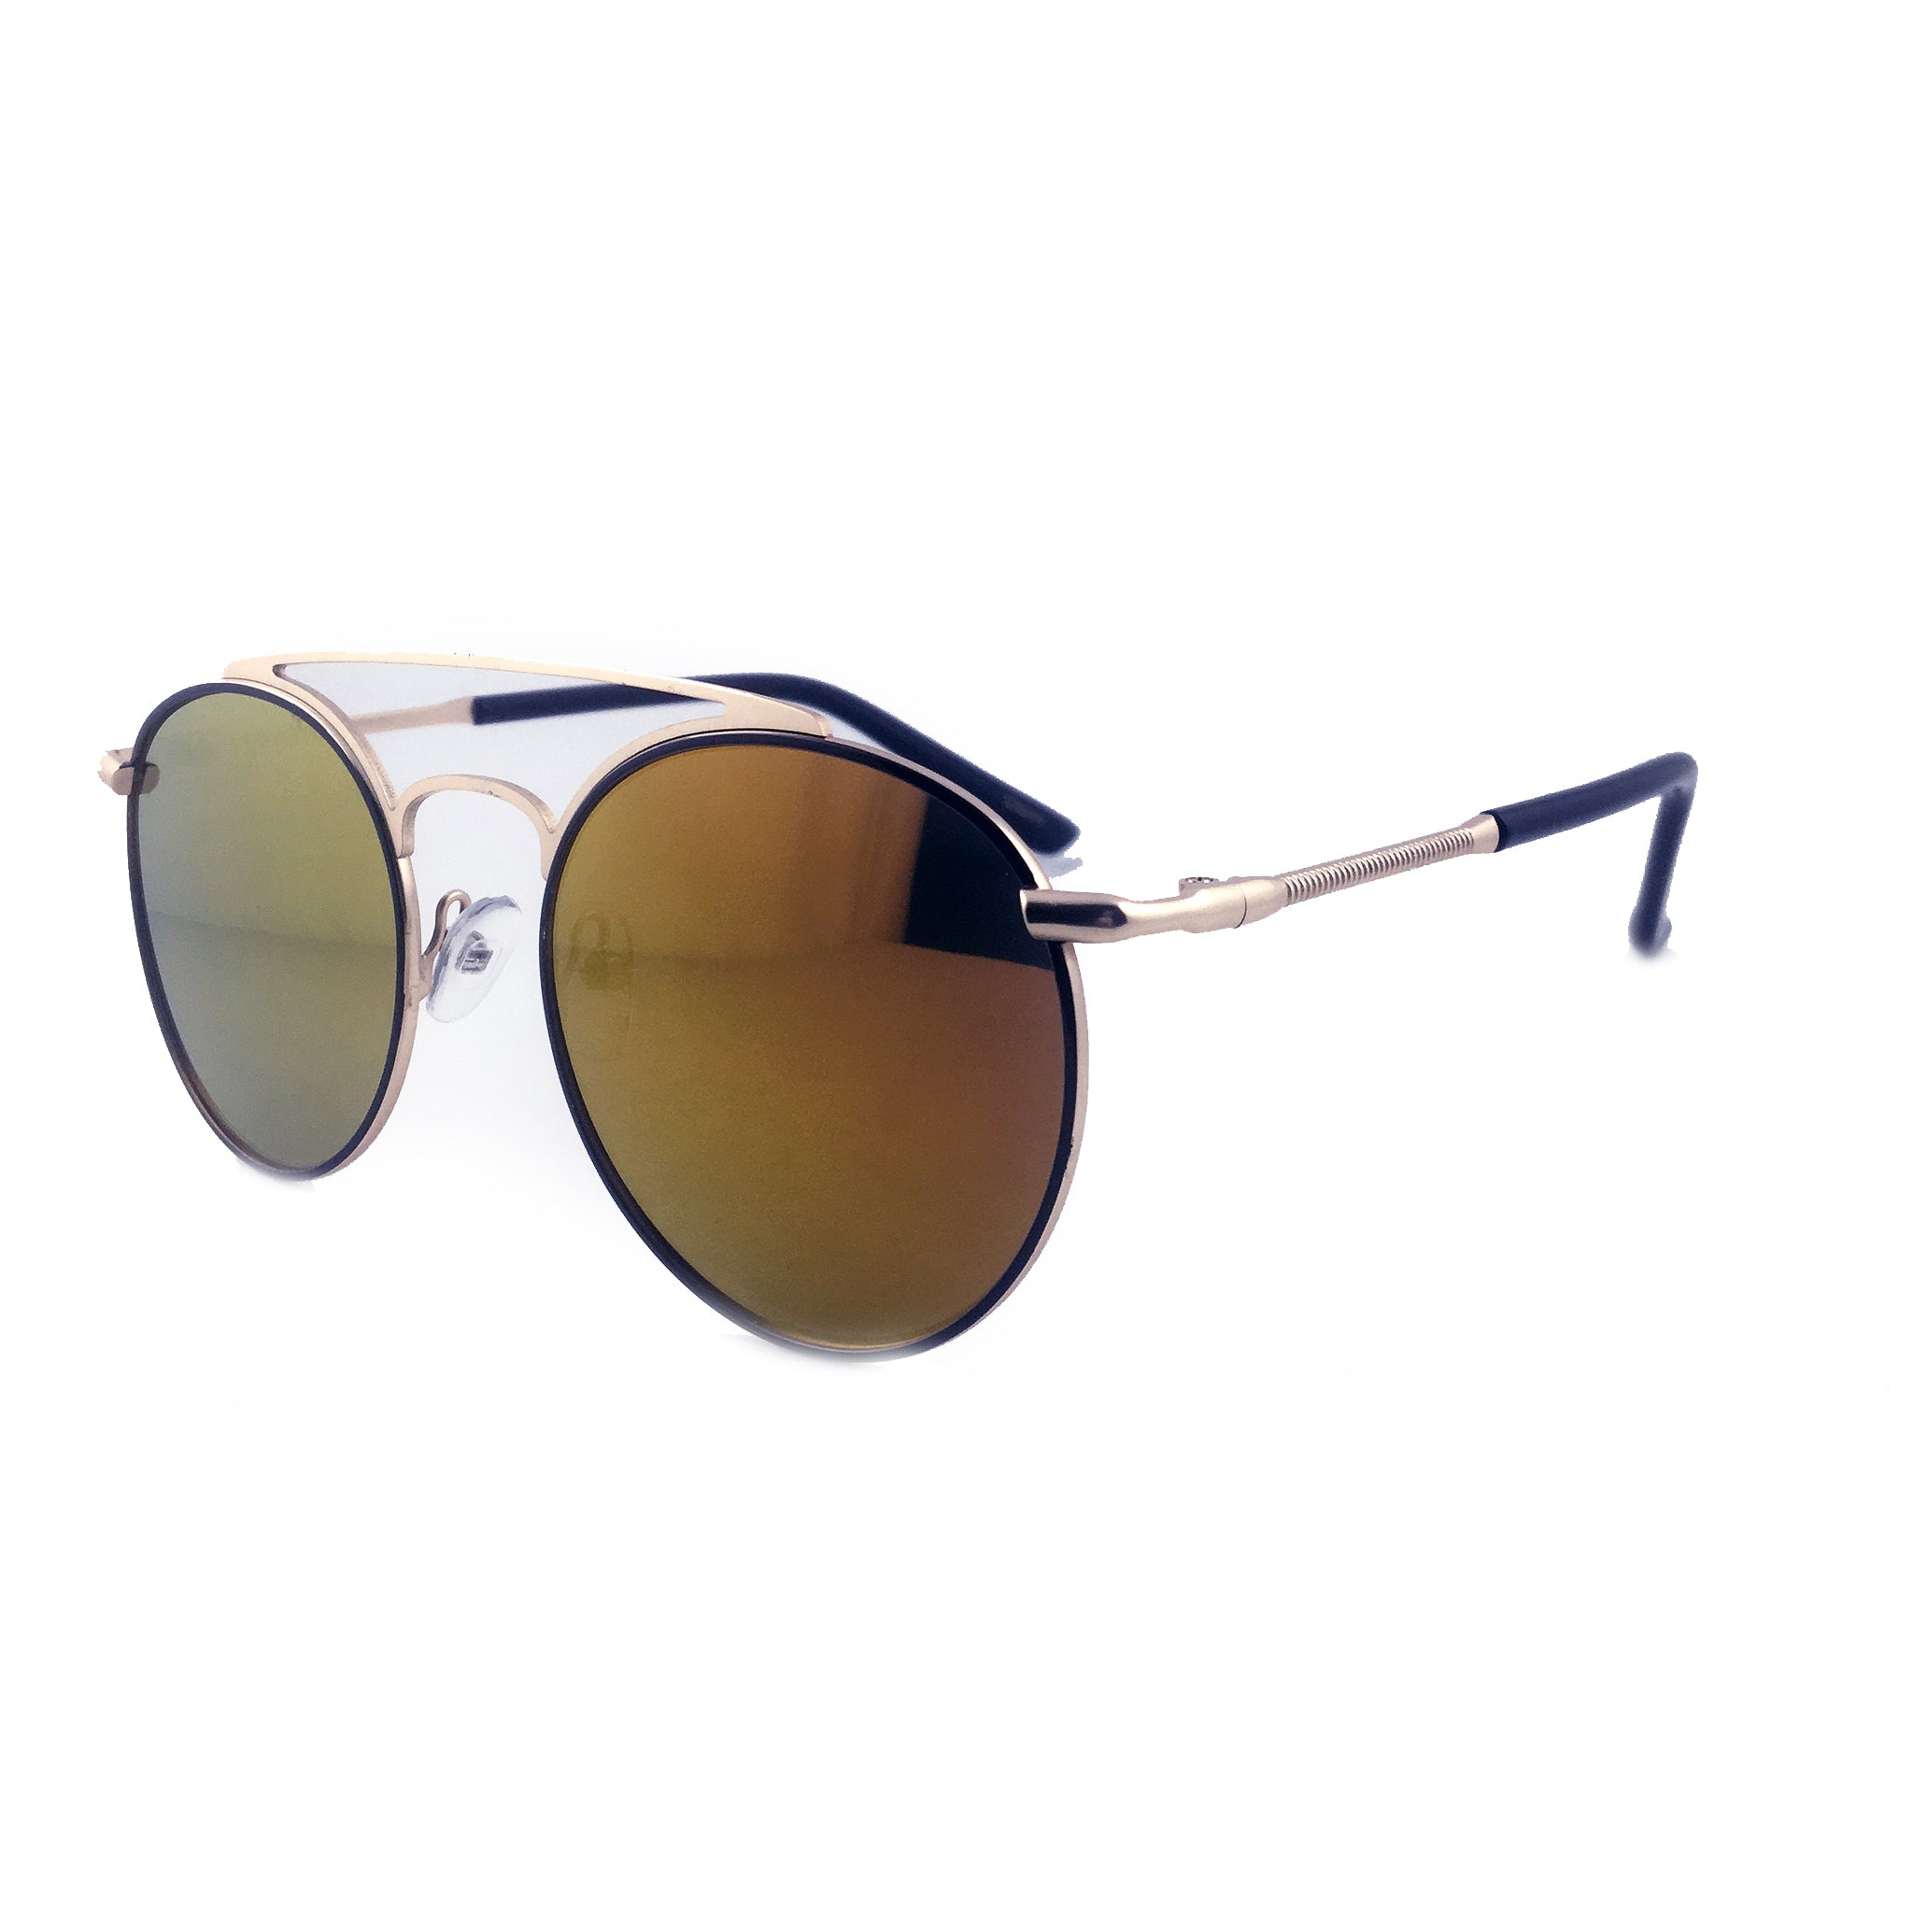 Round Aviator Sunglasses with rose gold tint and frame | The Perfect Gentleman